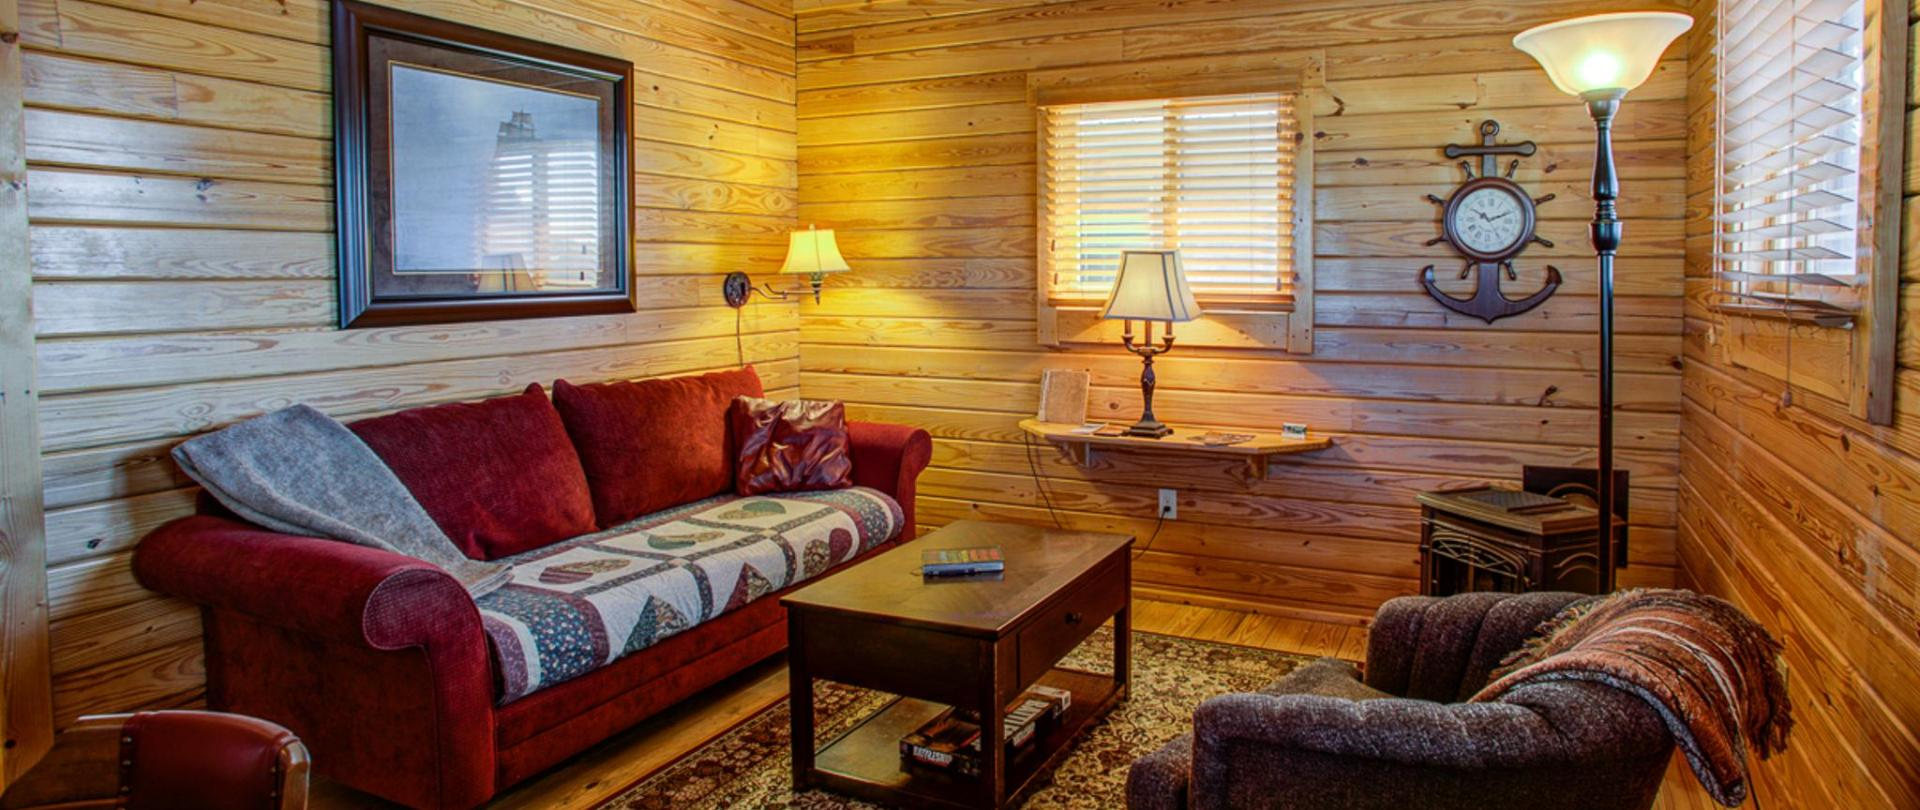 Moss Landing Cabin Small Files-3.jpg